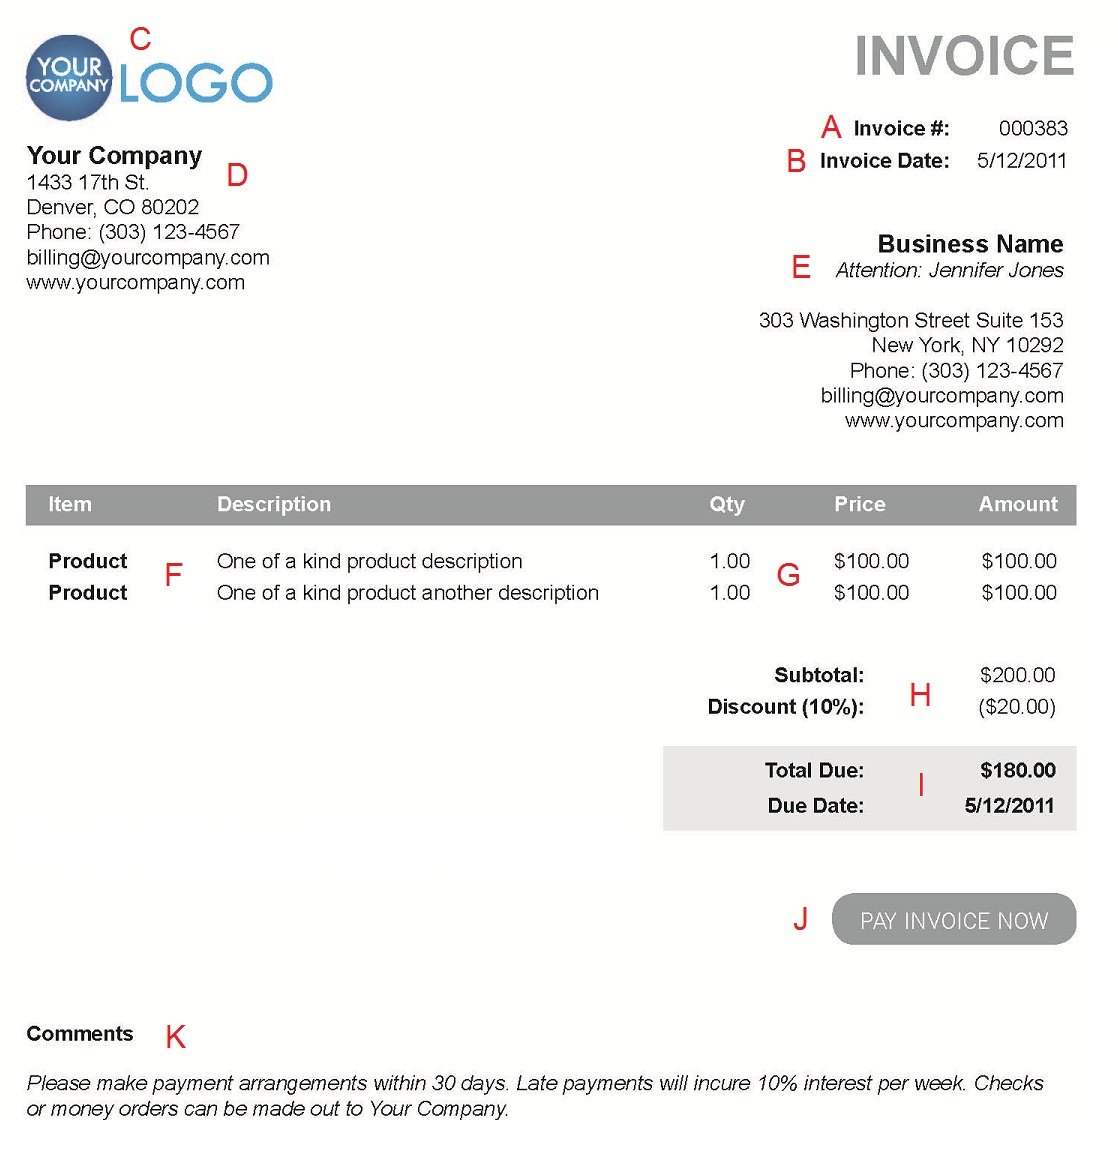 Proatmealus  Picturesque The  Different Sections Of An Electronic Payment Invoice With Lovely A  With Cute Final Invoice Sample Also Fake Invoices Templates In Addition Invoice Tempalte And What Is A Proforma Invoice In The Uk As Well As Invoice With Carbon Copy Additionally New Car Factory Invoice From Paysimplecom With Proatmealus  Lovely The  Different Sections Of An Electronic Payment Invoice With Cute A  And Picturesque Final Invoice Sample Also Fake Invoices Templates In Addition Invoice Tempalte From Paysimplecom